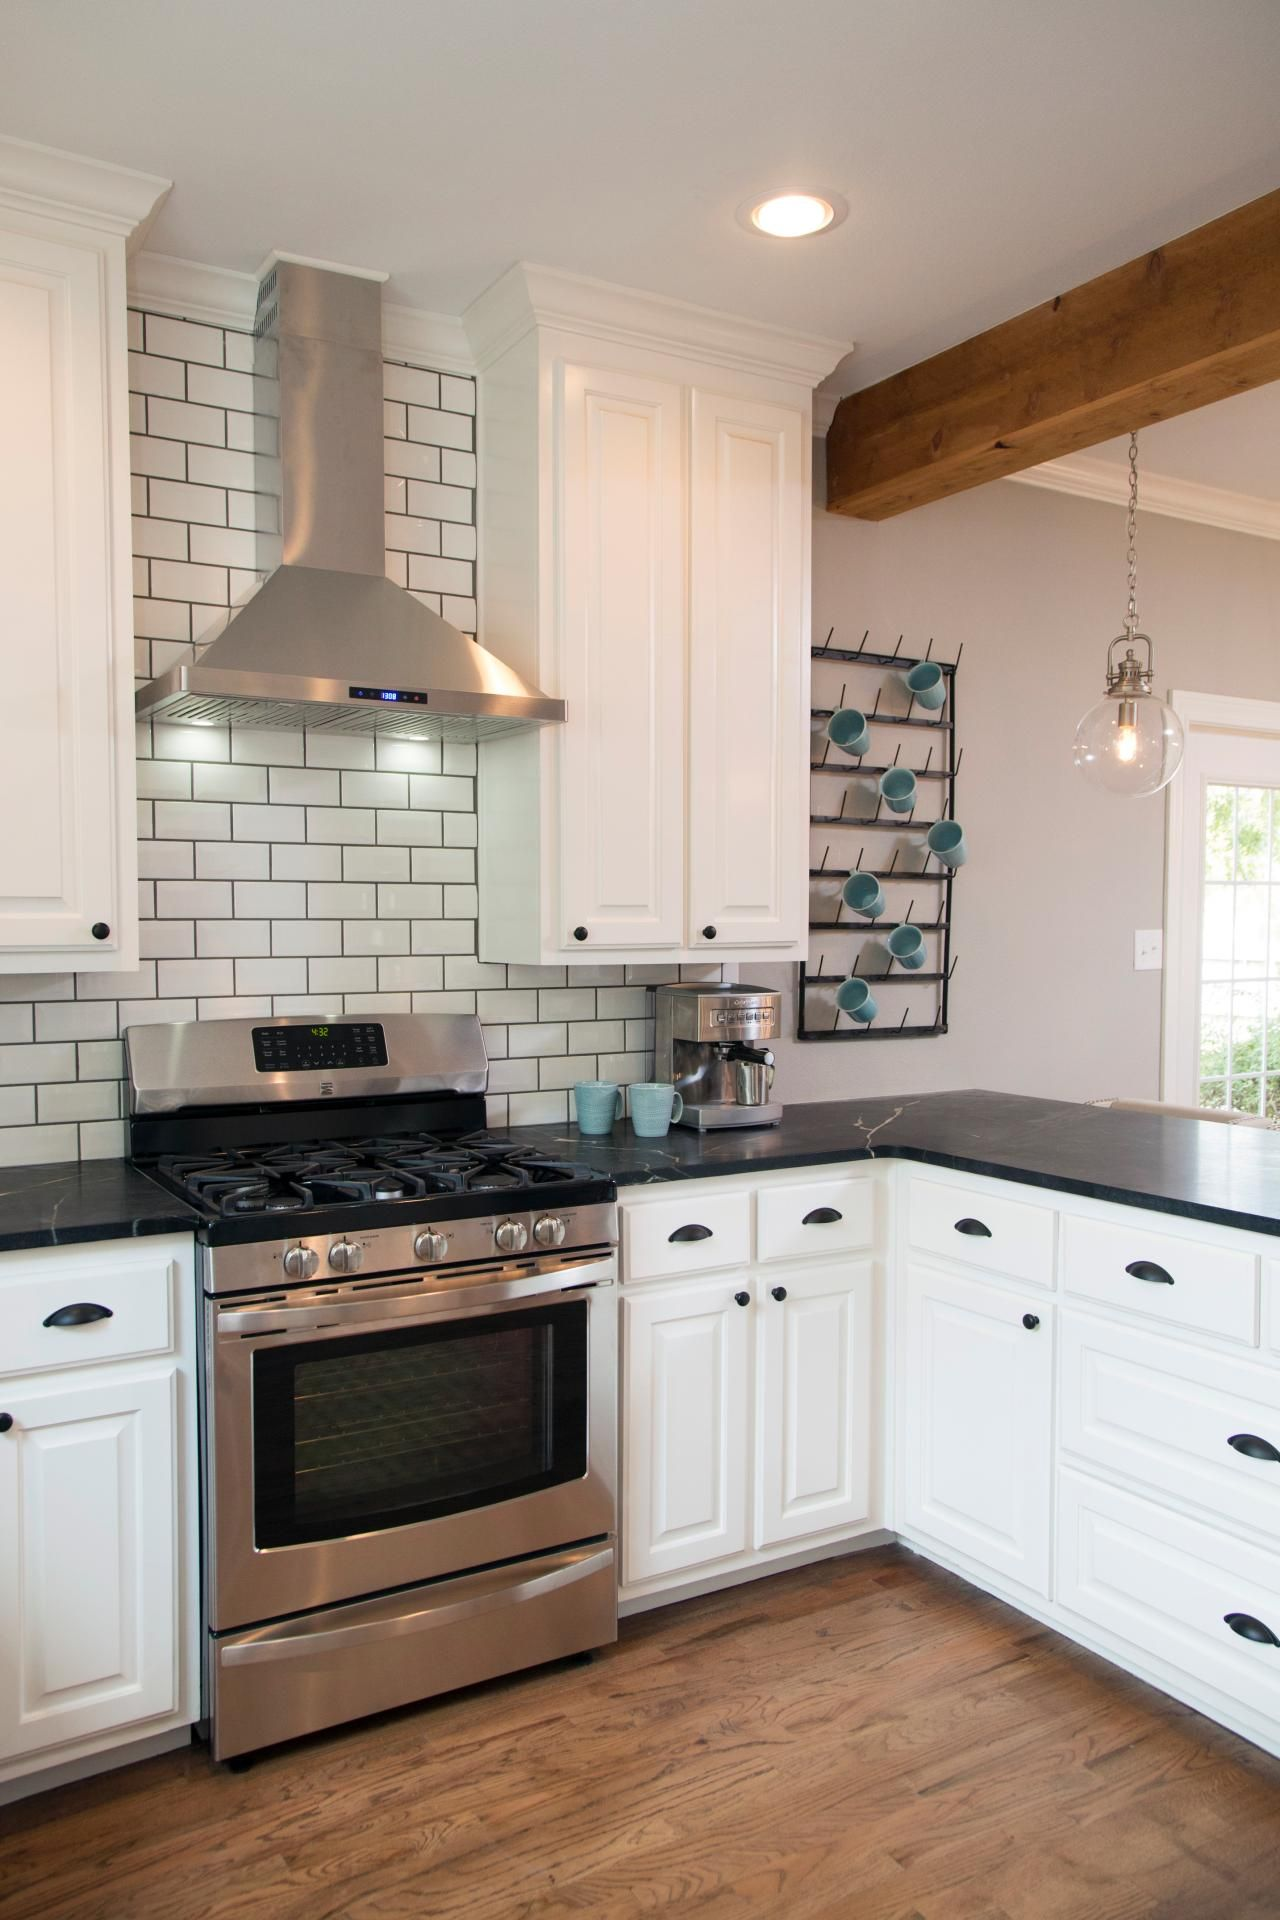 fixer upper hosts chip and joanna gaines renovated the homeowners